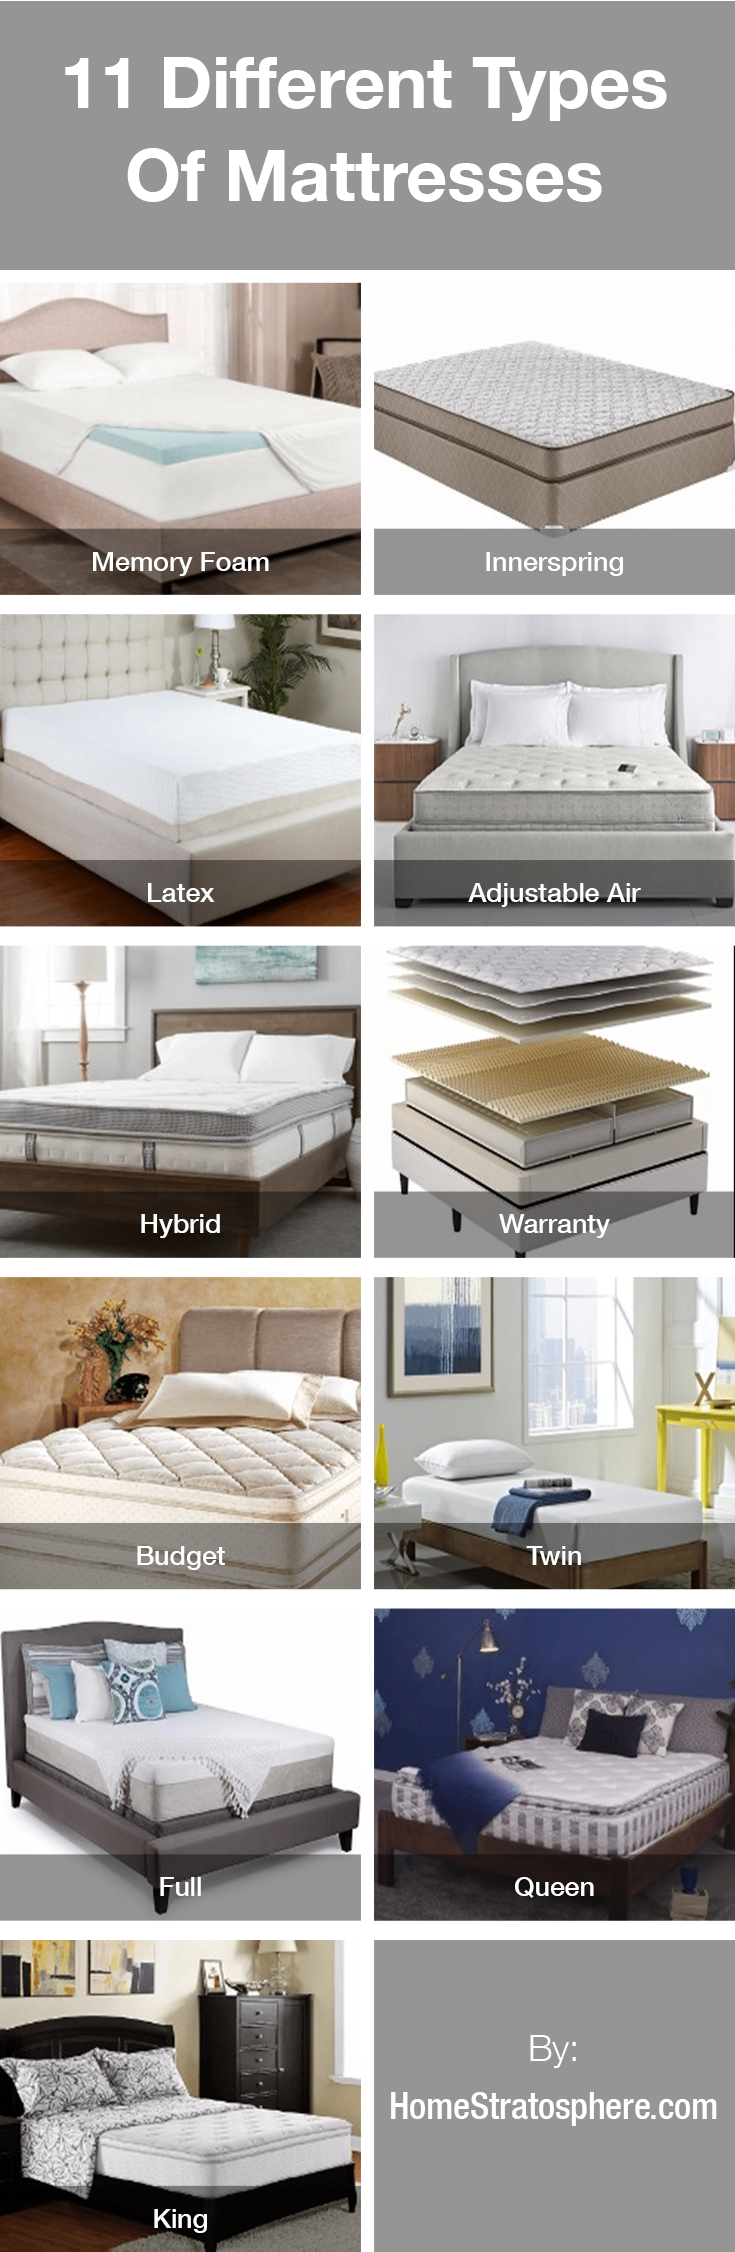 Types Of Mattresses >> 12 Different Types Of Bed Mattresses Buying Guide For 2018